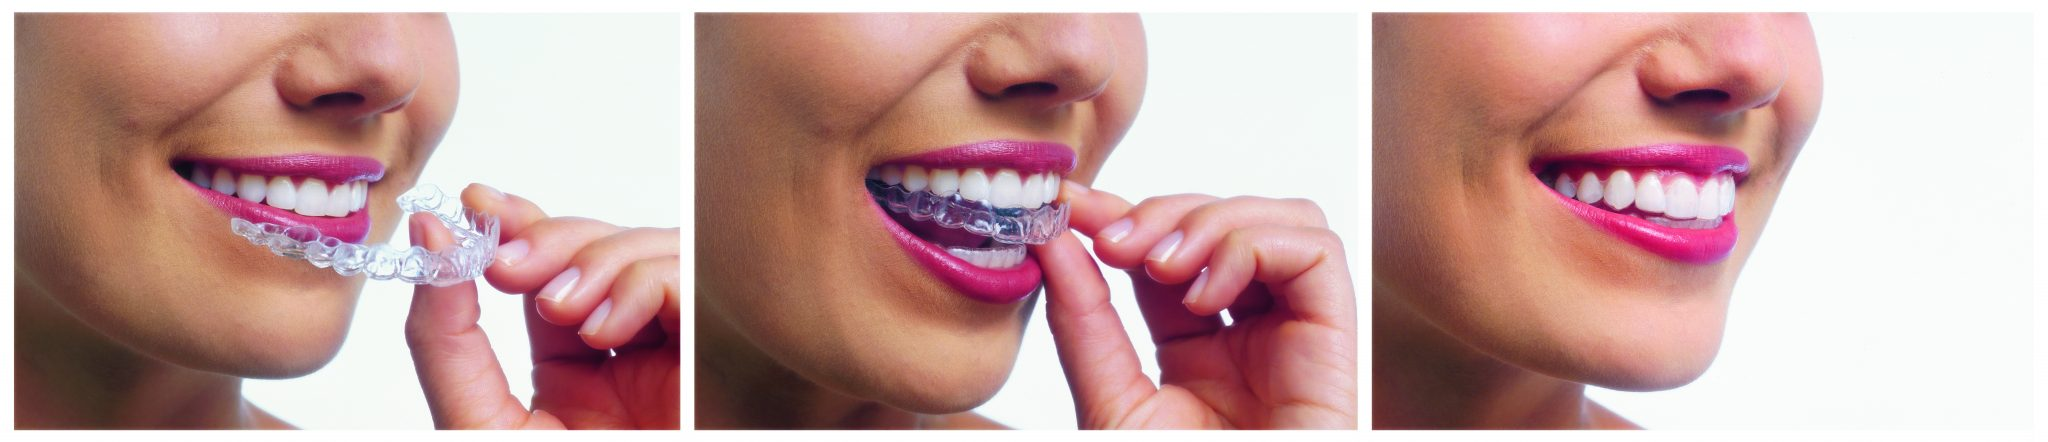 https://dentalopolis.com/wp-content/uploads/2017/03/fitting-invisalign.jpg